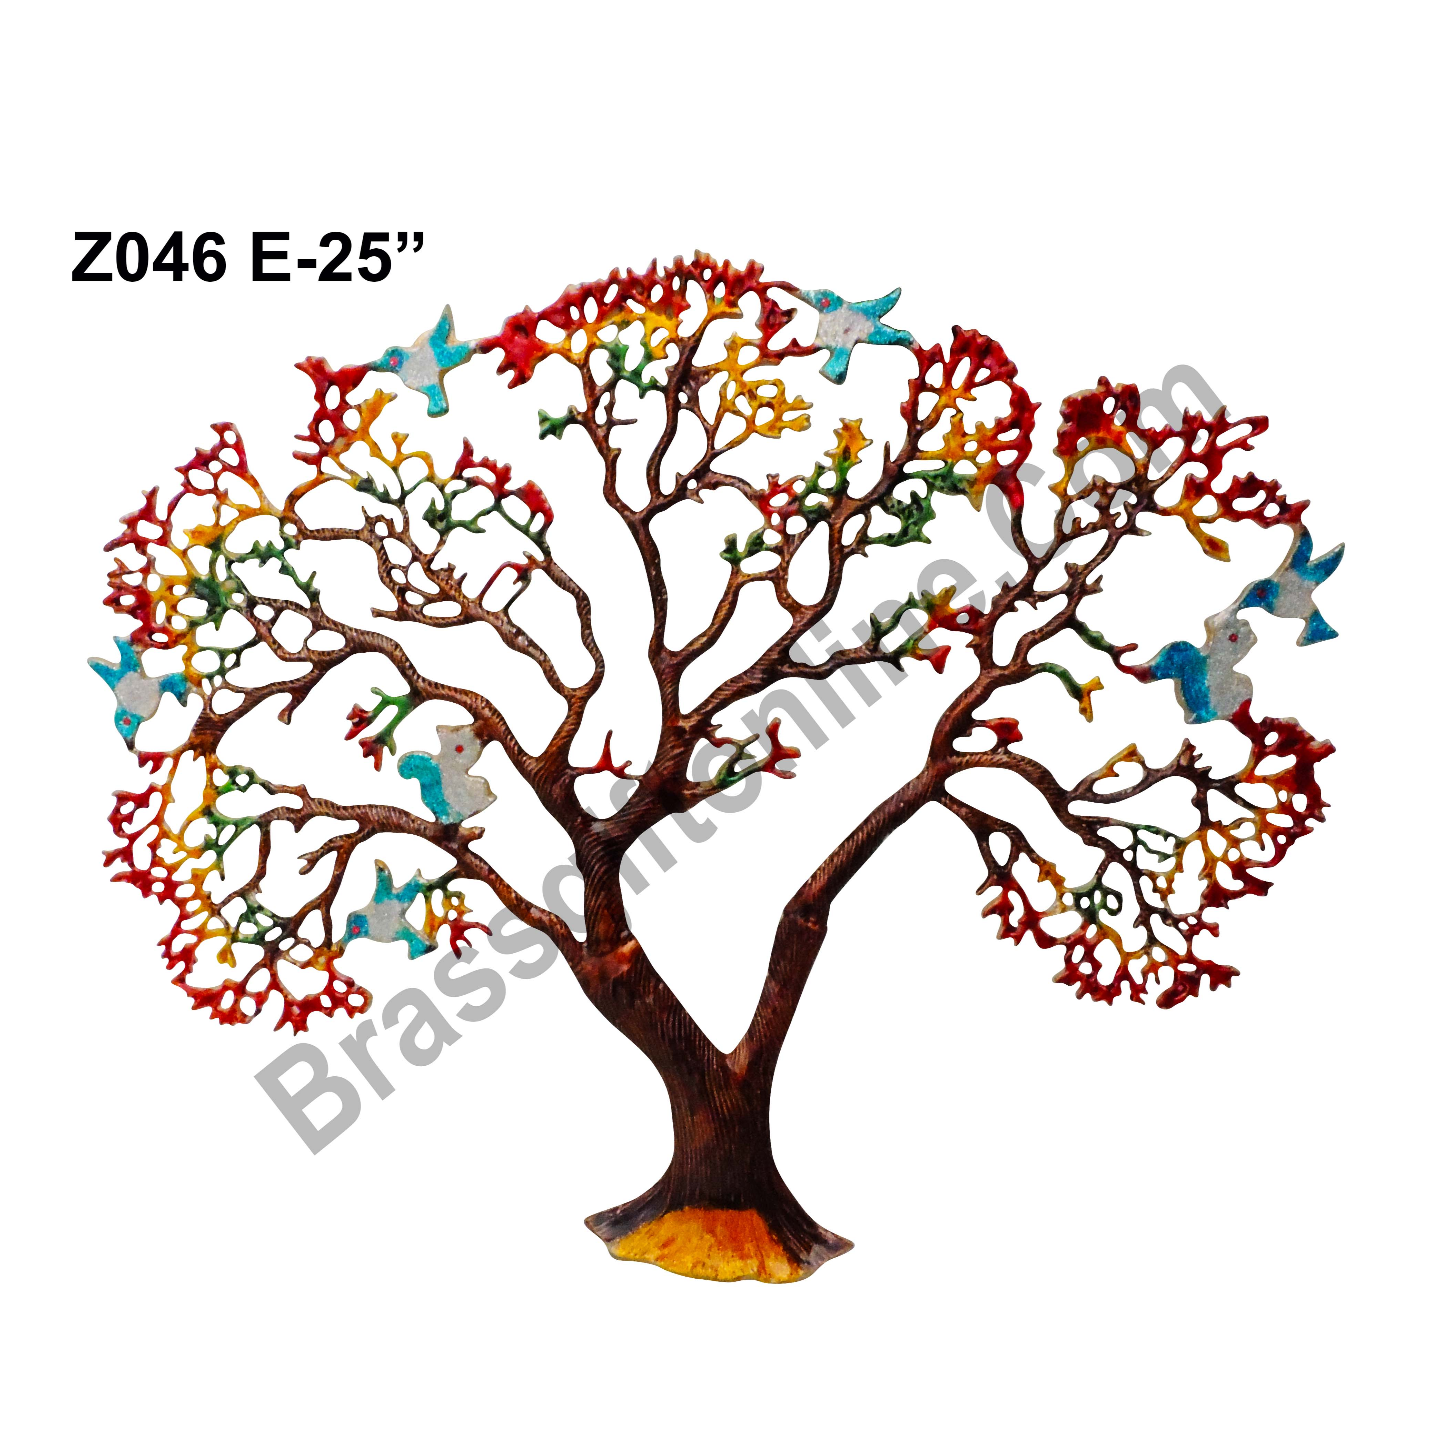 Wall Decorative Aluminium Tree - 31 Inch  Z046 E